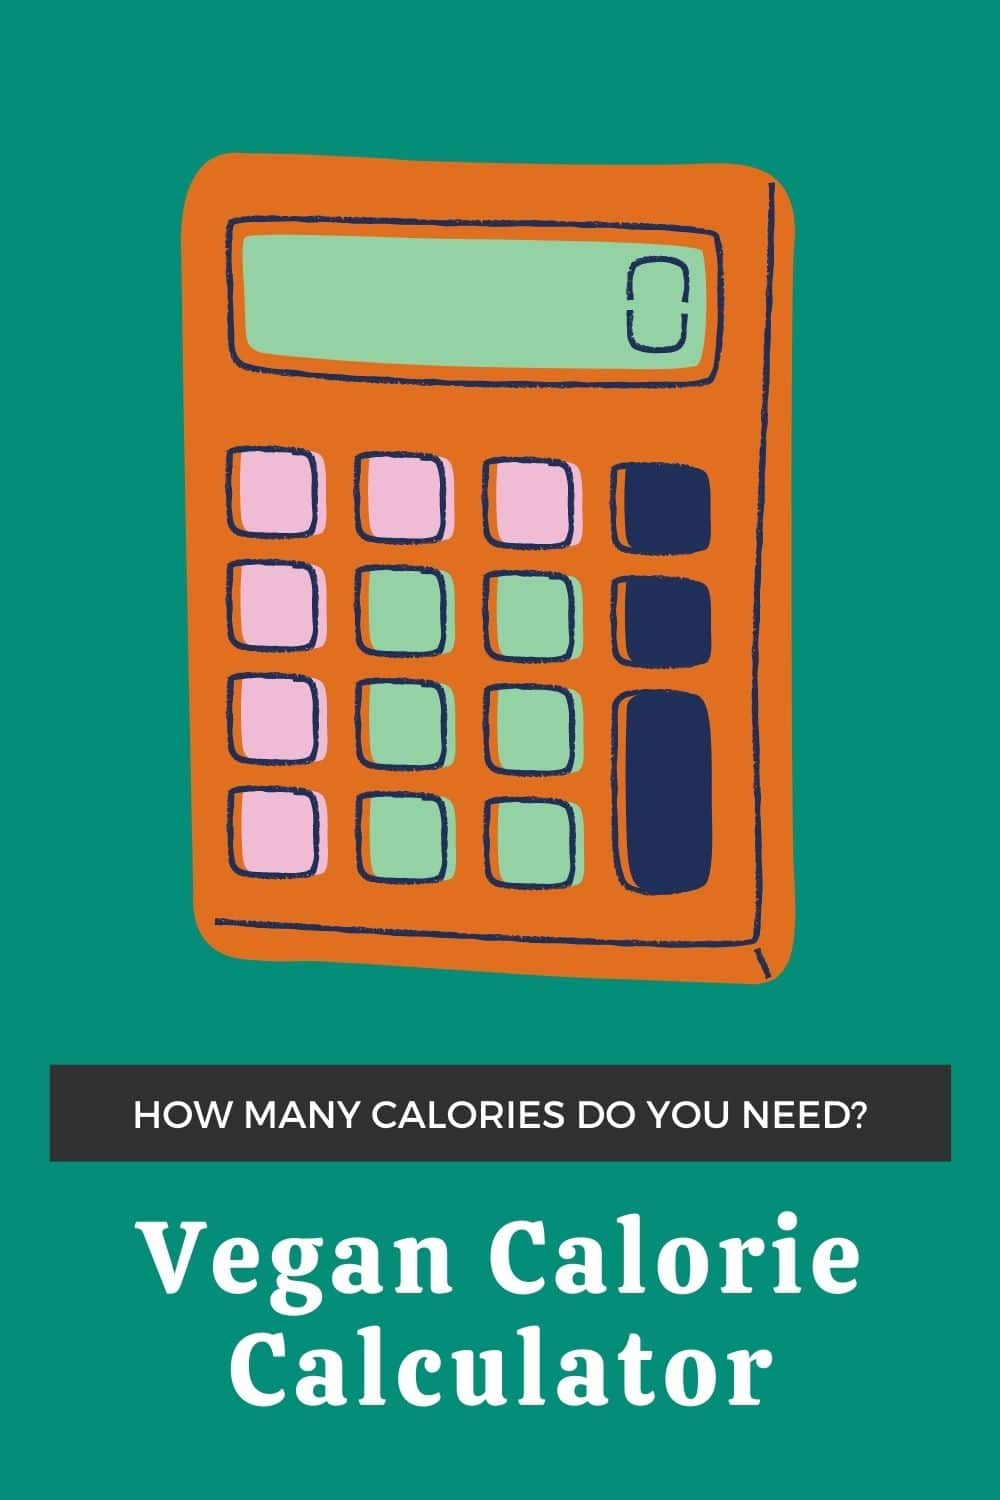 """Calculator doodle with text on image that says """"how many calories do you need? Vegan Calorie Calculator"""""""